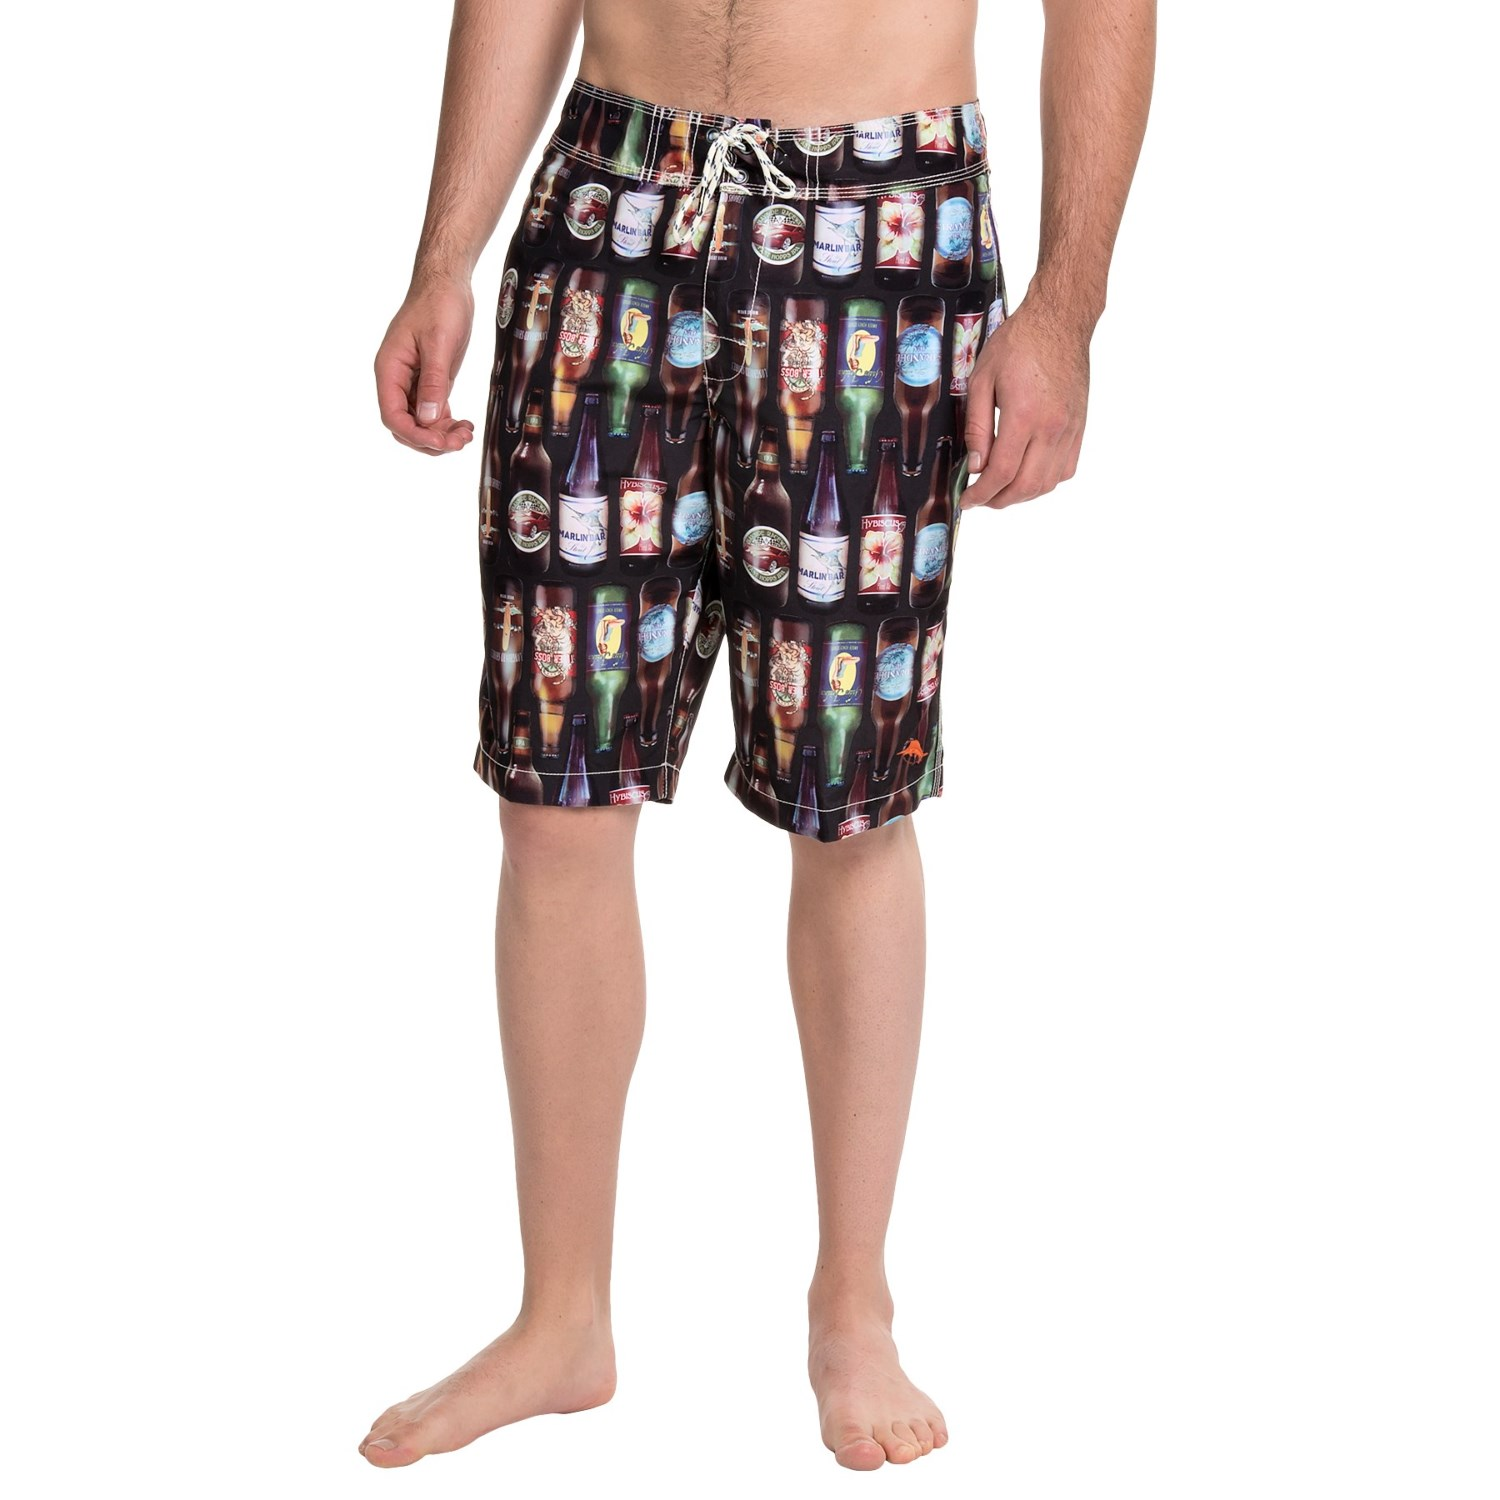 Tommy Bahama Furniture Closeouts #19: Tommy Bahama Waikiki 99 Bottles Of Beer Boardshorts (For Men) In Black - Closeouts